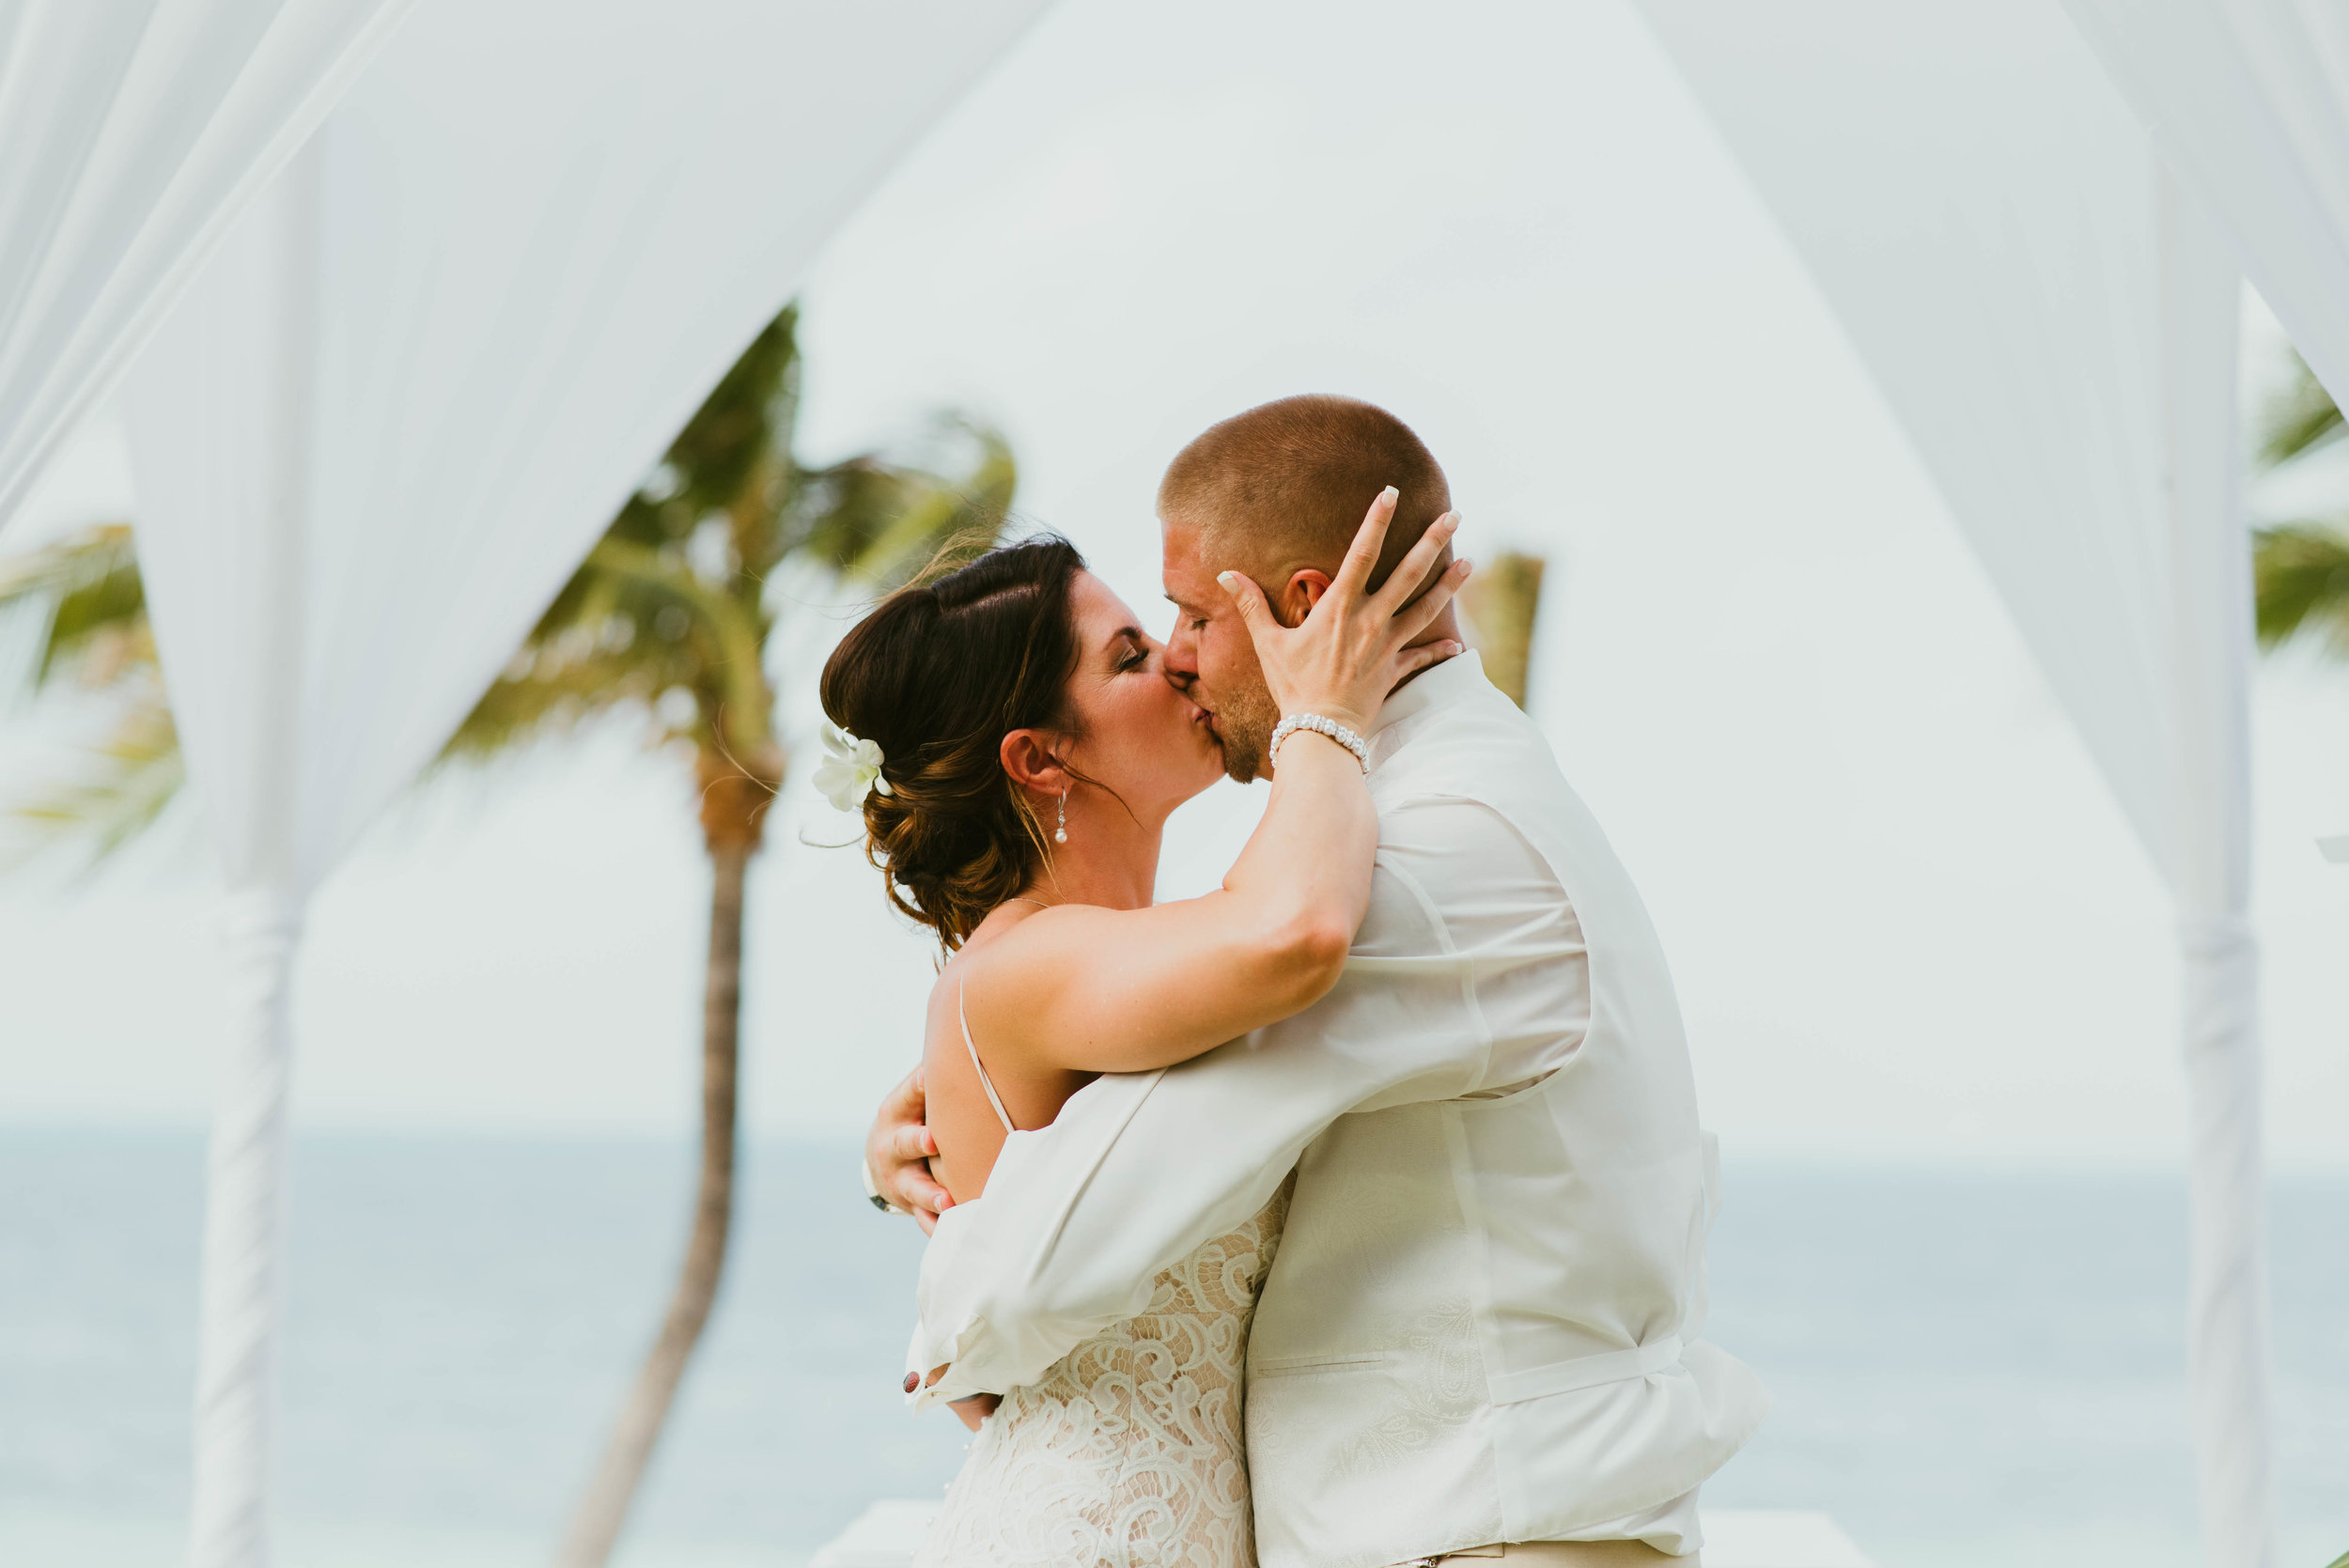 Beach-Wedding-Photography-Cancun-Elopement-Destination-Elopement-Photography-Destination-Beach-Wedding-+Costa-Rica-Wedding-Photography-Beach-Wedding-Photos-teresawoodhull-Cancun-Elopement-Beach-Wedding-+Sunset-Beach-Wedding-Fotografia-de-bodas-Nicoya-Peninsula-Elopement-Photographer-Santa-Teresa-Elopement-Photographer-Adventure-elopement-photographer-Santa-Teresa-Wedding-Photographer-Adventure-Wedding-Boda-playa-santa-teresa-Adventure-Wedding-Photography-Adventure-Wedding-Photographer-Beach-Elopement-Beach-Elopement-Photos-maddie-mae-Beach-Elopement-Photographer-Destination-Elopement-Photographer-Sunset-Beach-Elopement-Mexico-wedding-photographer-cabo-wedding-photographer-mexico-wedding-mexico-destination-wedding-cancun-destination-wedding-cancun-elopement-photographer-playa-del-carmen-wedding-playa-del-carmen-destination-wedding-photographer-playa-del-carmen-wedding-photography-Nicoya-Peninsula-Wedding-Photography-Nicoya-Peninsula-Wedding-Photographer-Nicoya-Peninsula-Elopement-Photography-beach-ceremony-first-kiss